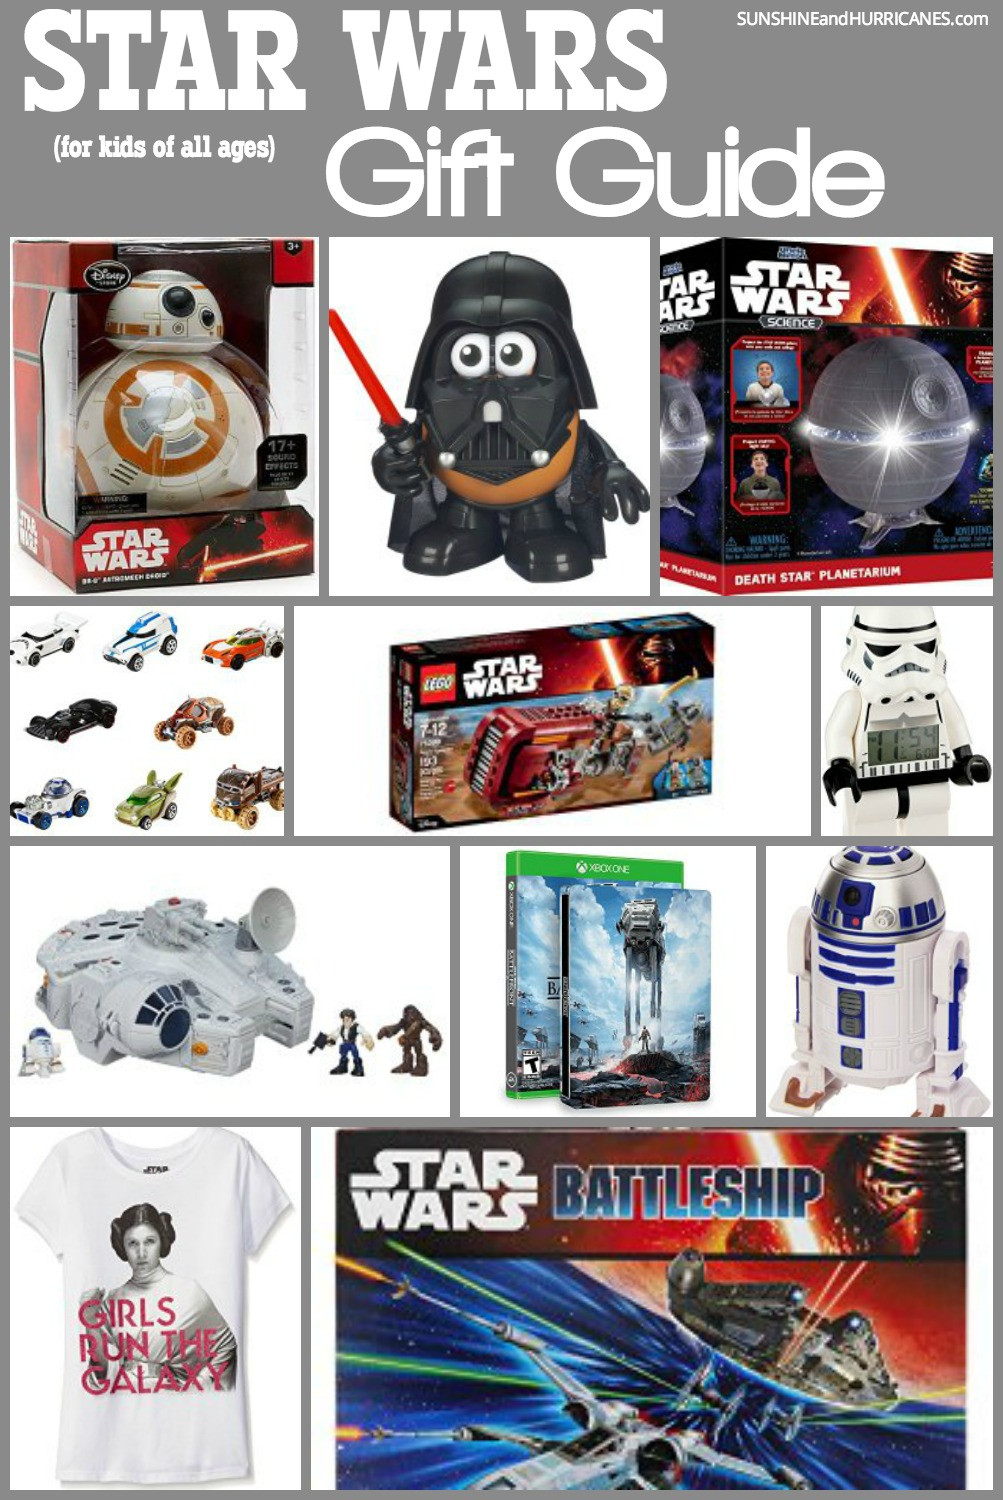 Best ideas about Star Wars Birthday Gifts . Save or Pin Star Wars Gift Guide For Jedis of all Ages Now.